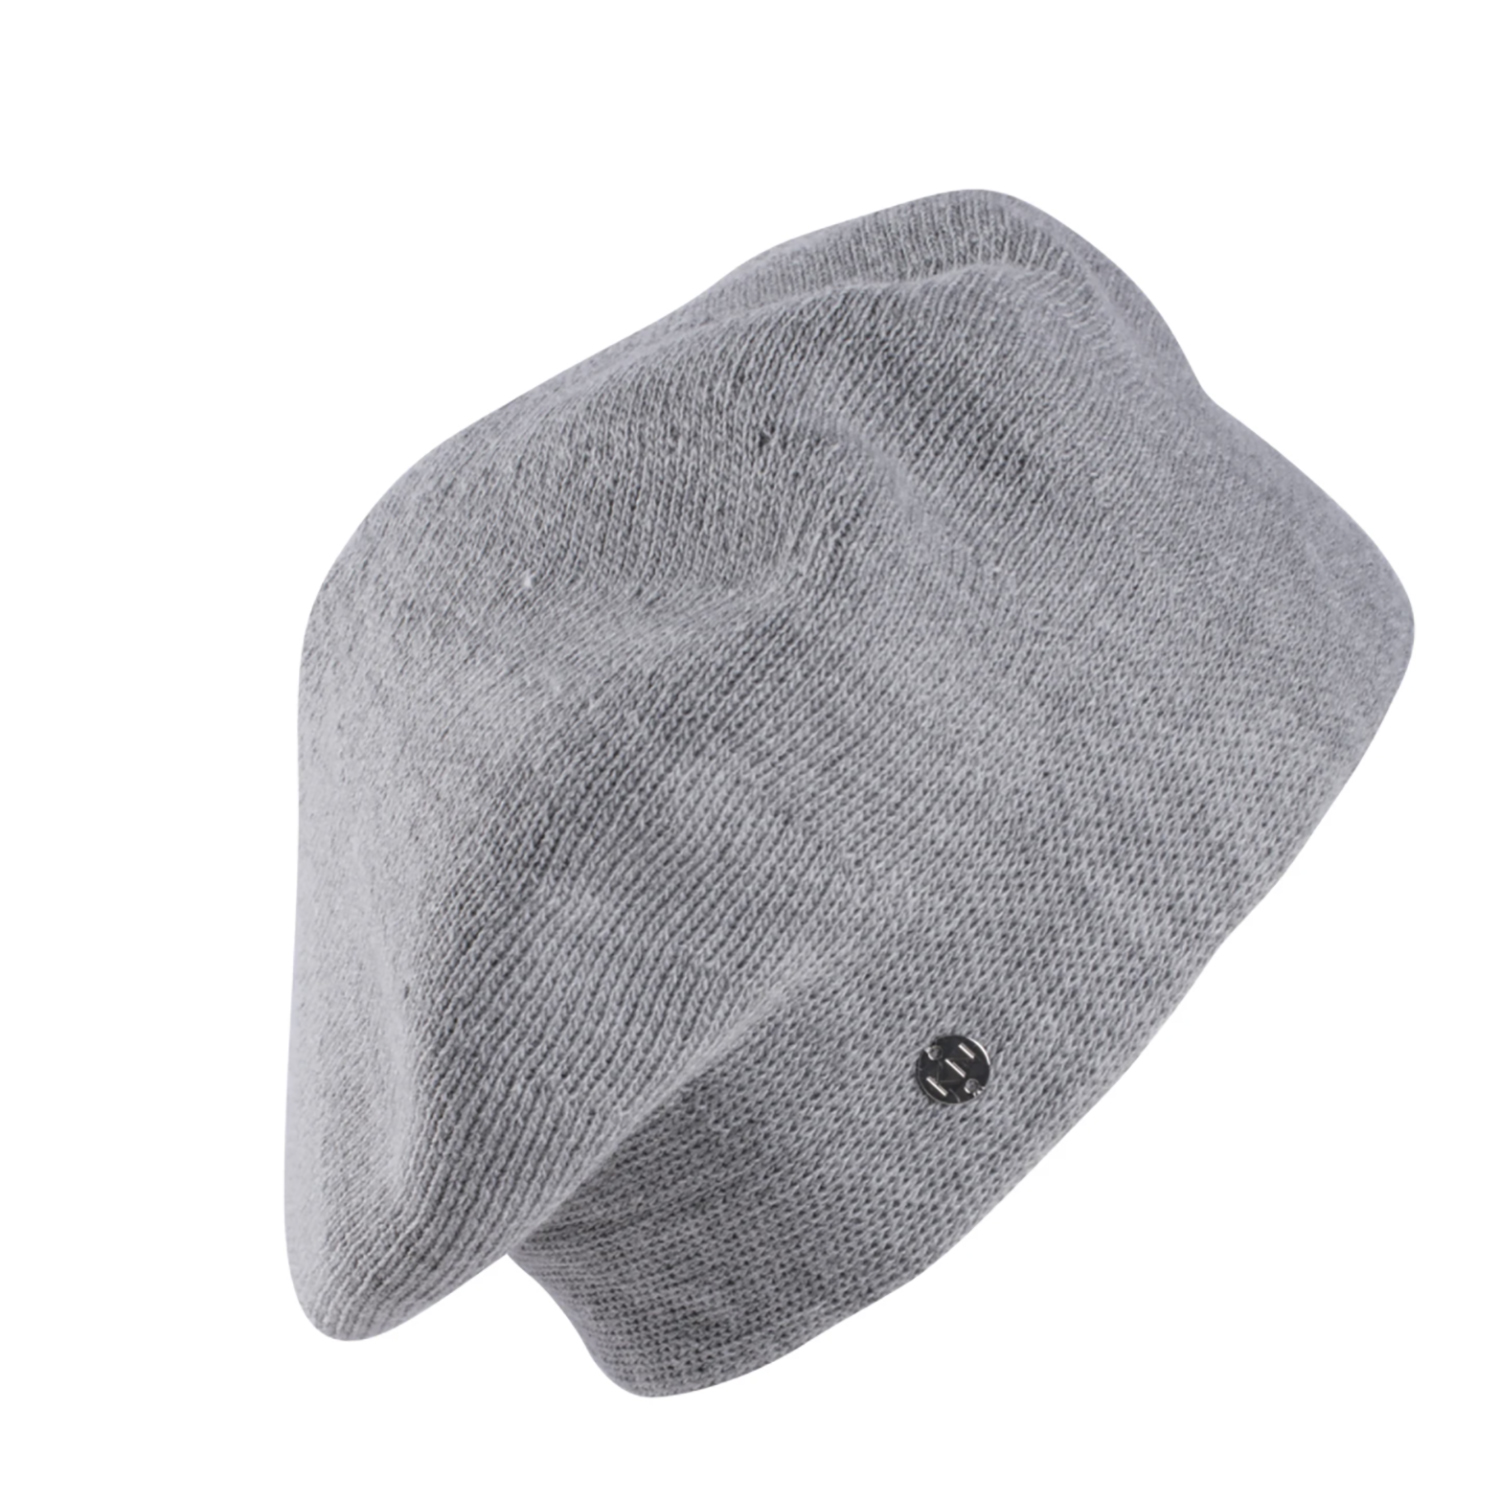 KN Saari Beret Light Grey